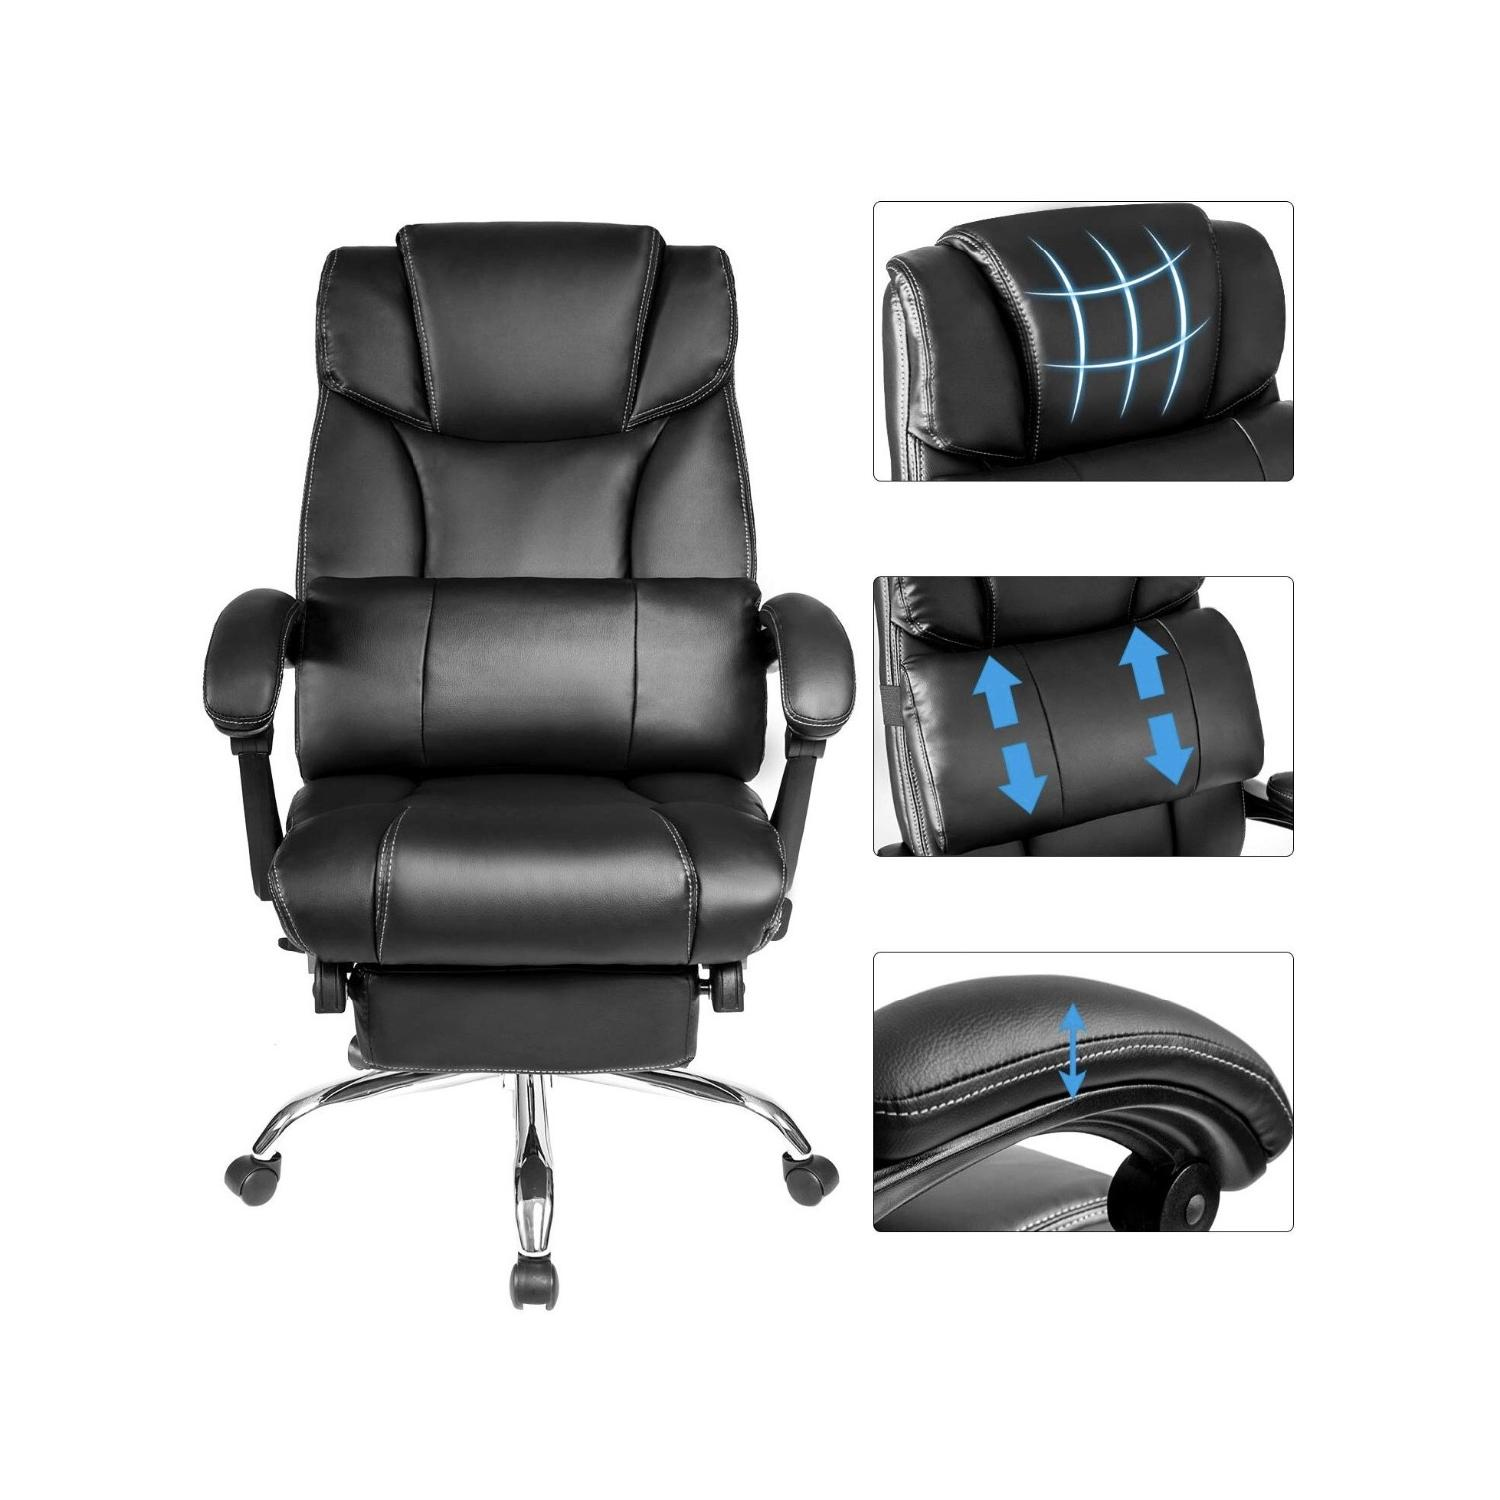 Merax Reclining Office/Gaming Chair-6